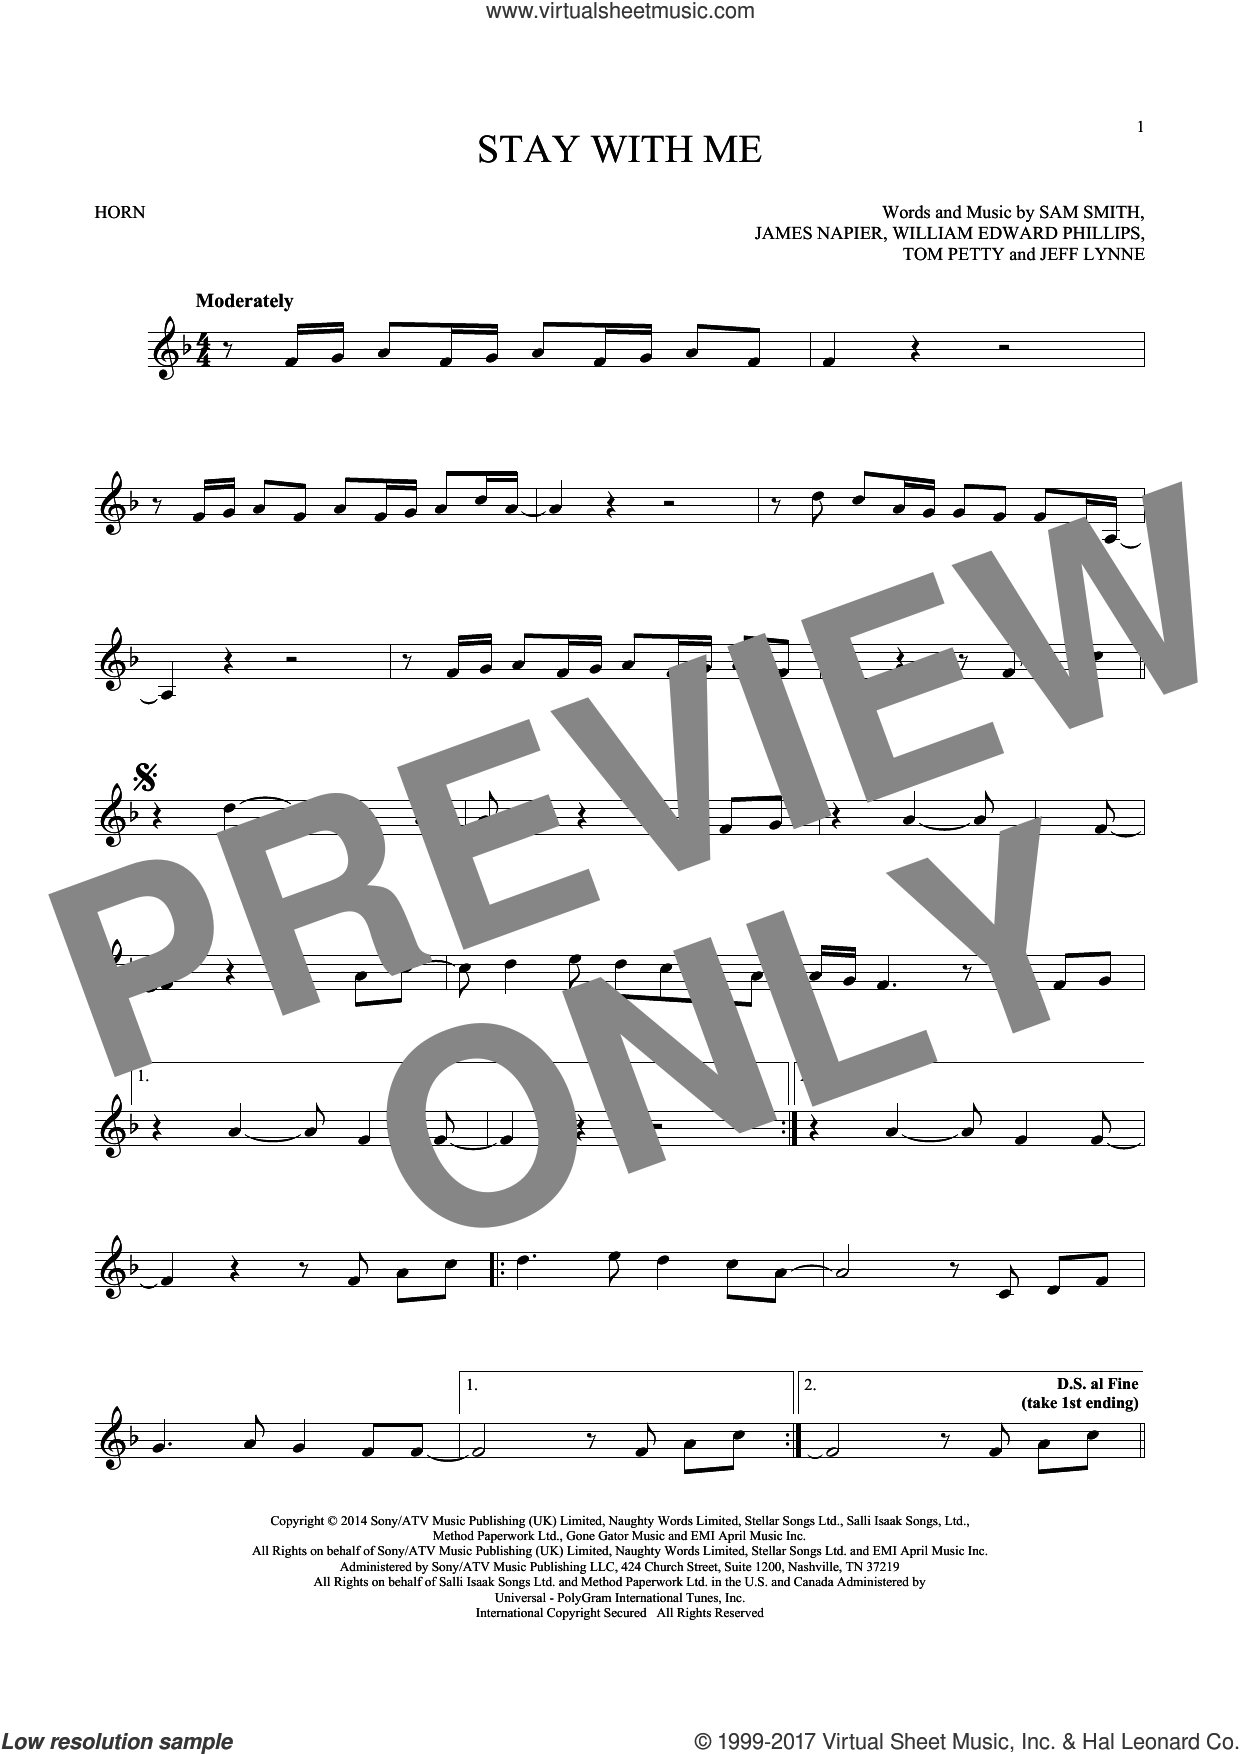 Stay With Me sheet music for horn solo by Sam Smith, Jeff Lynne and Tom Petty. Score Image Preview.